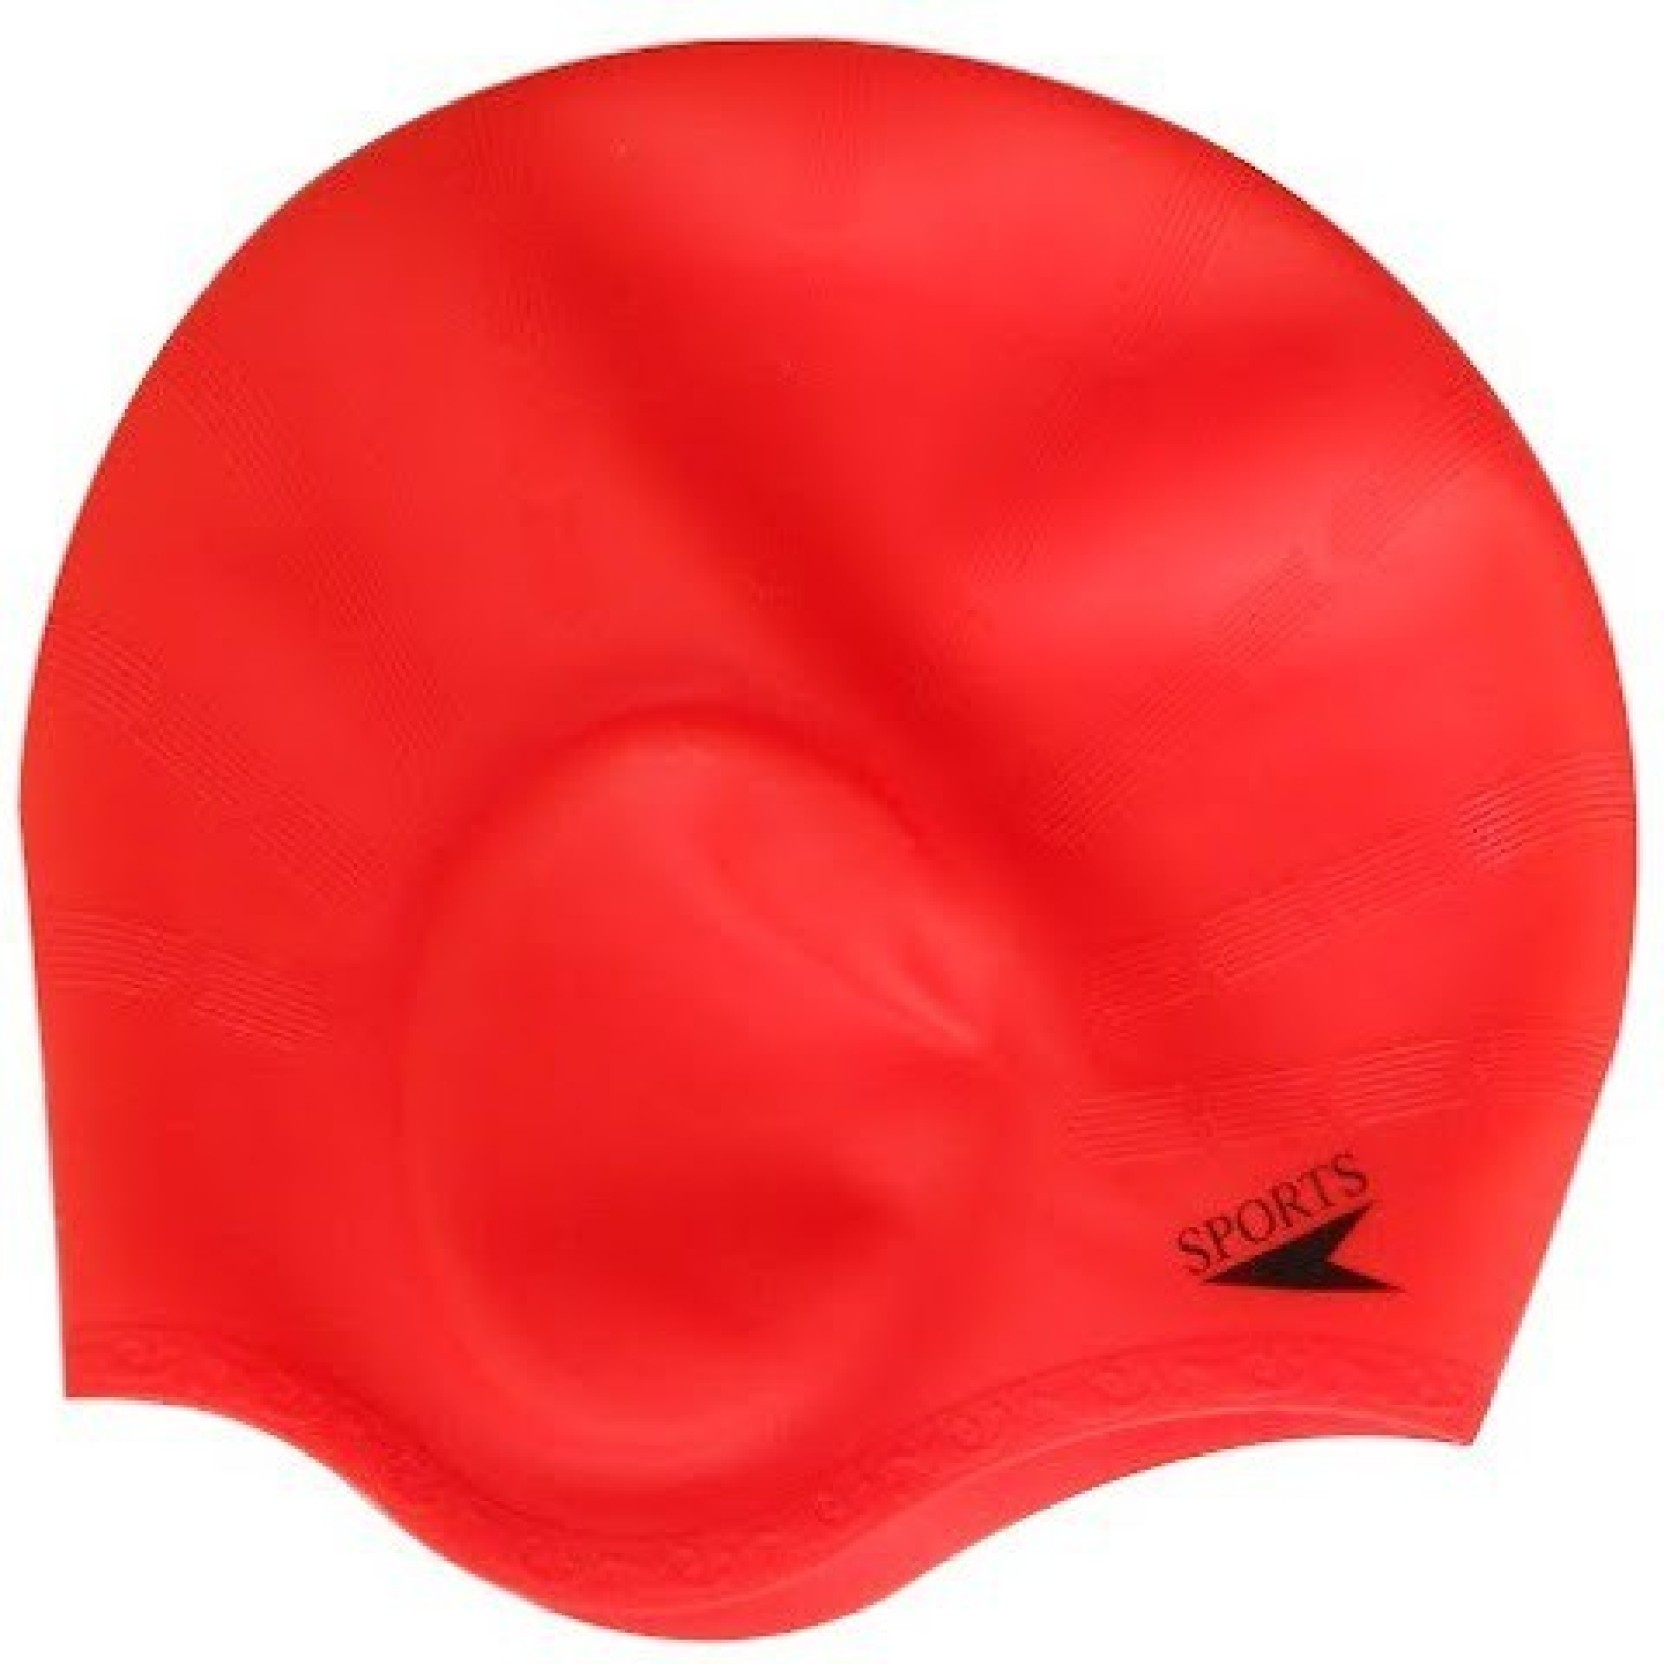 1eea2bc31ea437 Plyr Silicone Swim Ear Swimming Cap - Buy Plyr Silicone Swim Ear ...